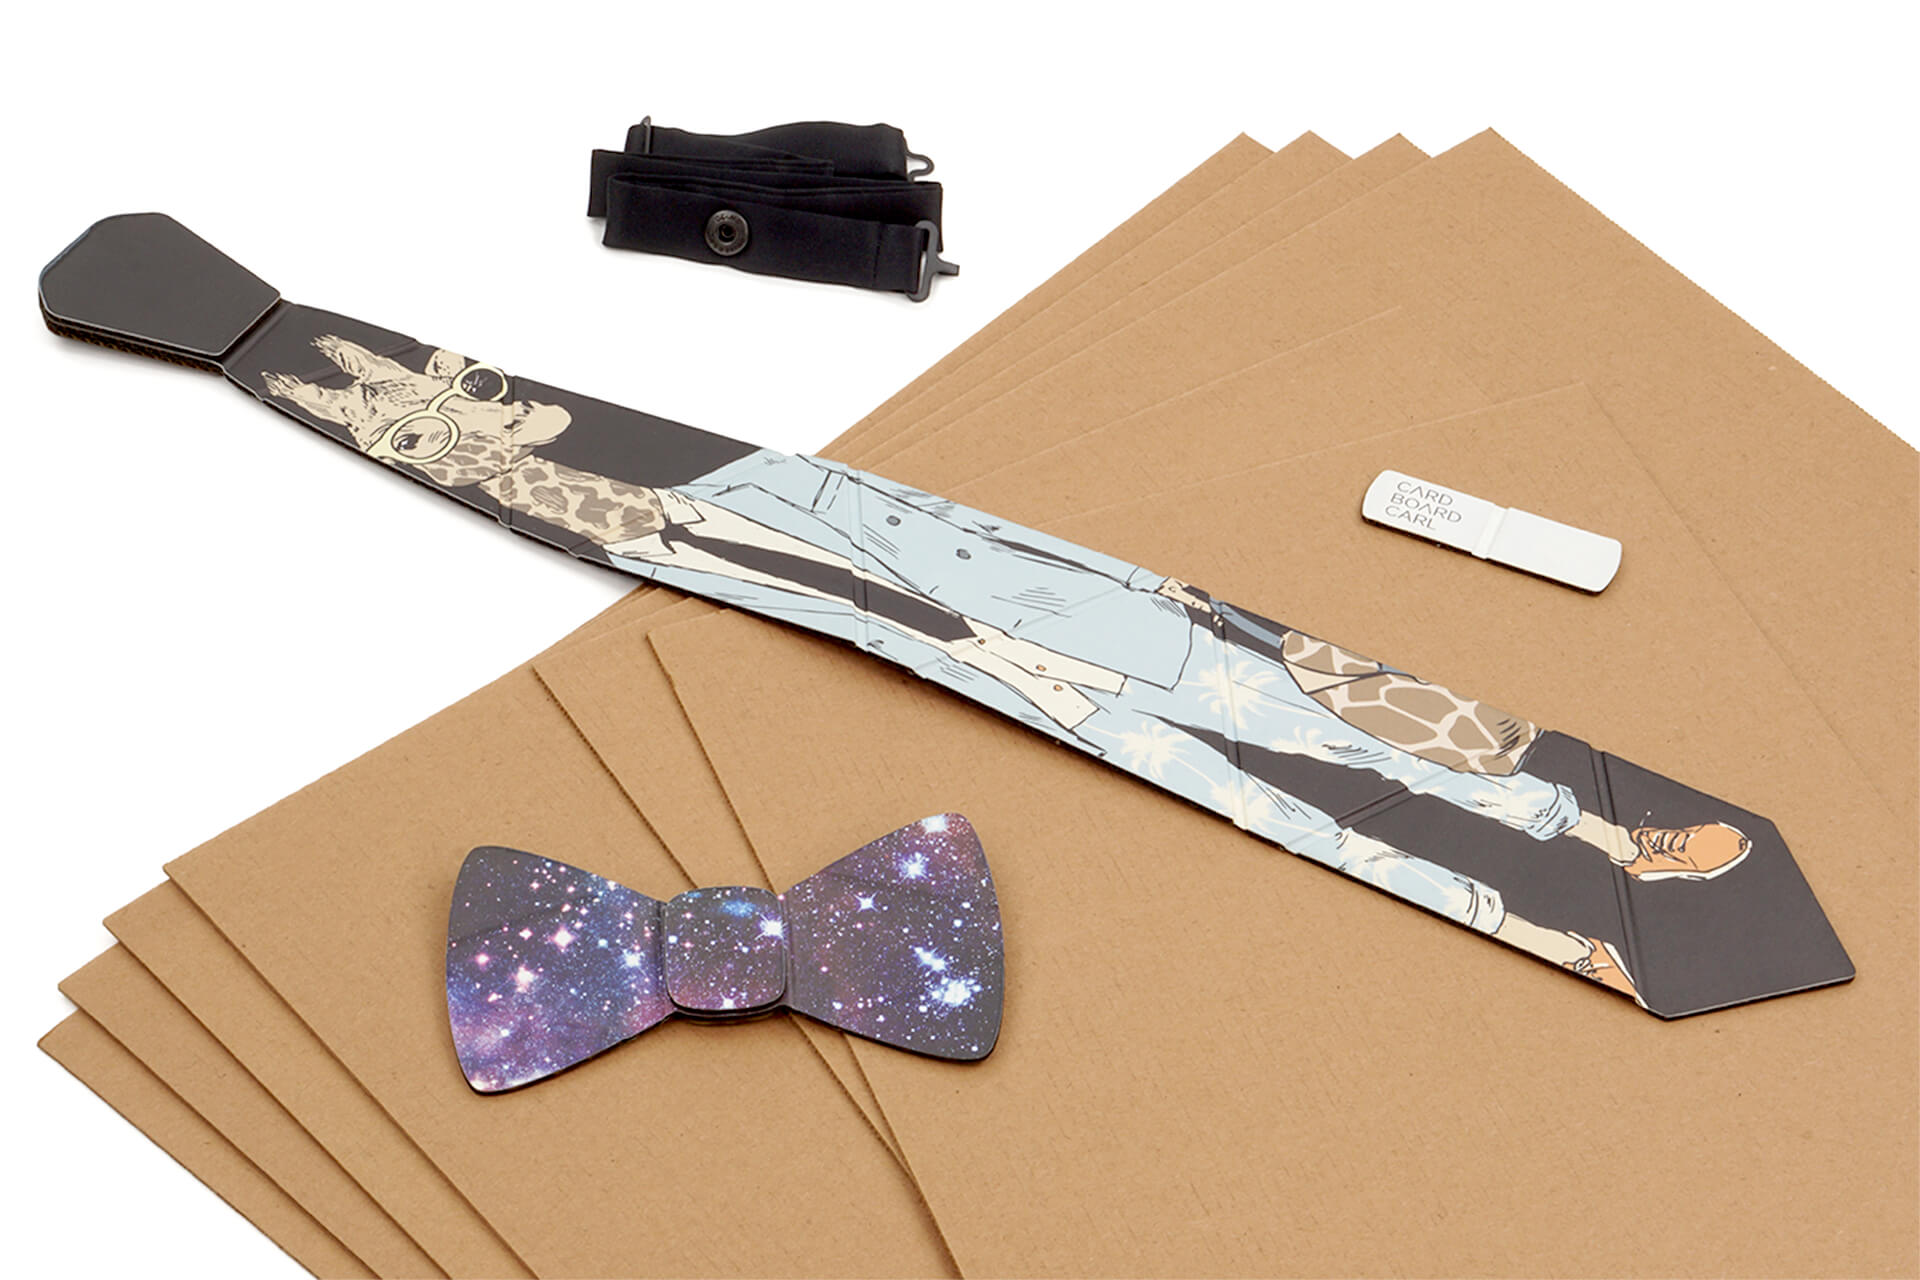 A cardboard neck tie and bow tie resting on cardboard sheets